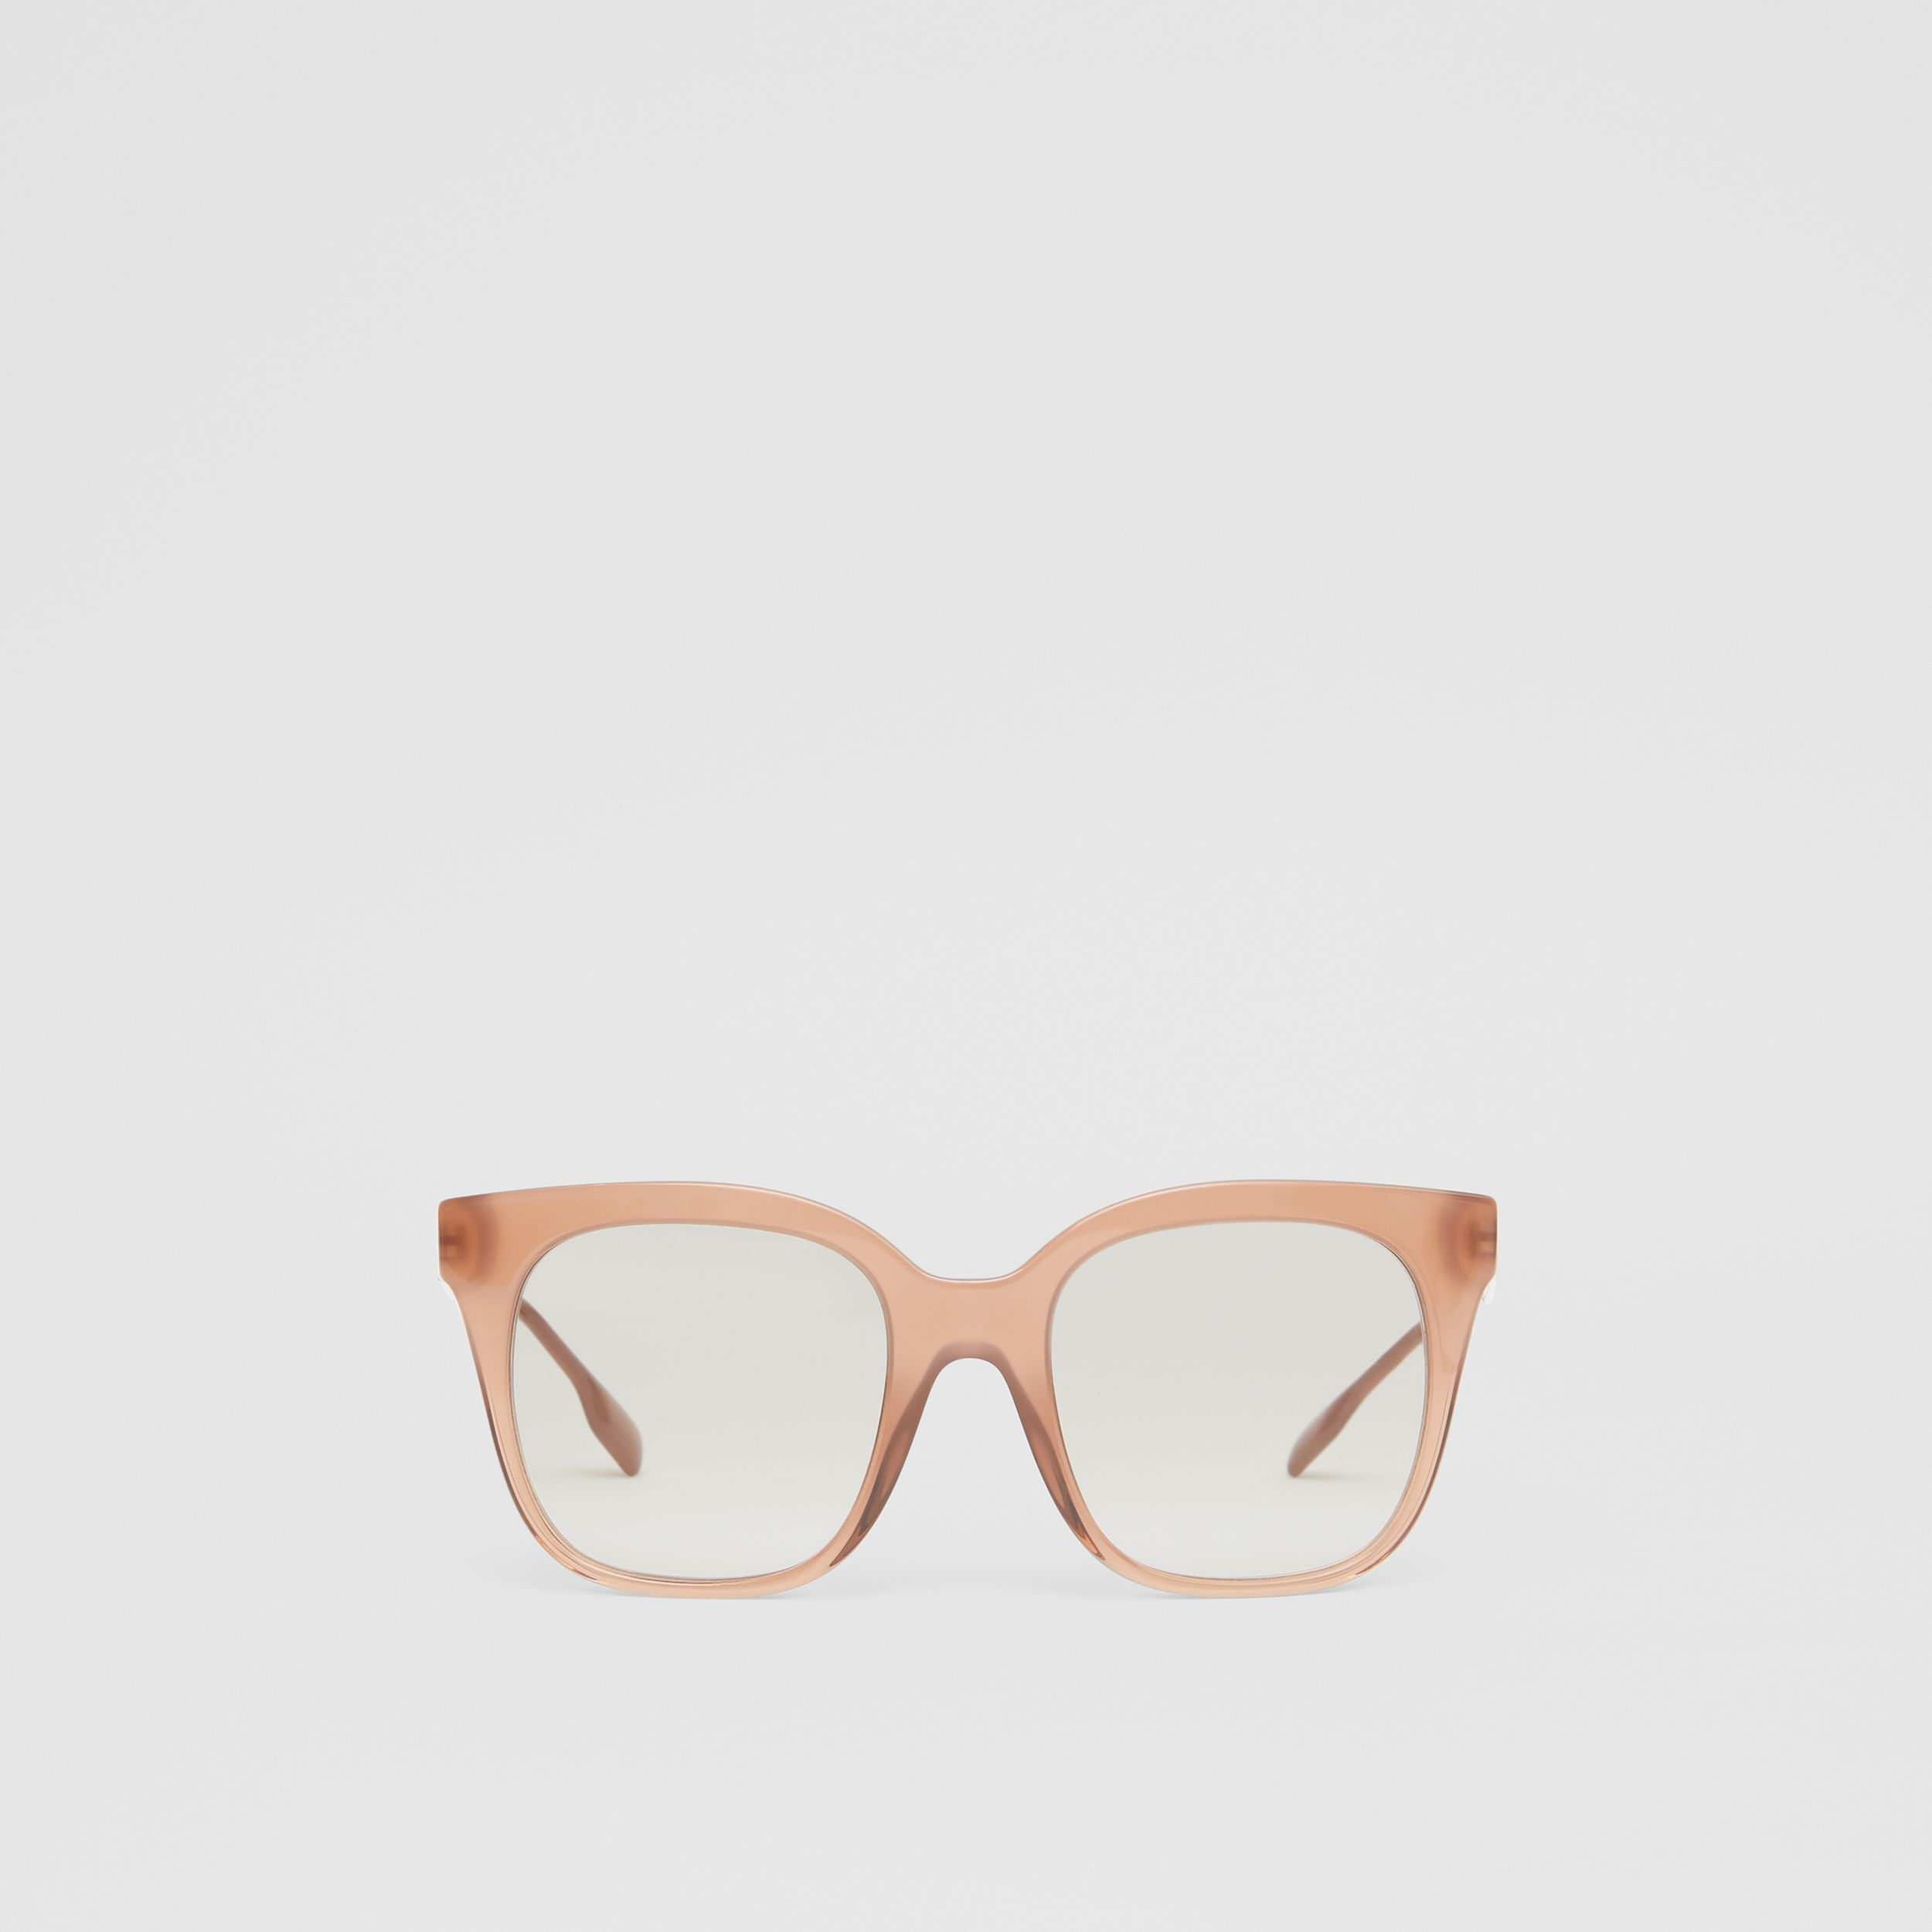 Butterfly Frame Sunglasses in Nude Pink - Women | Burberry - 1